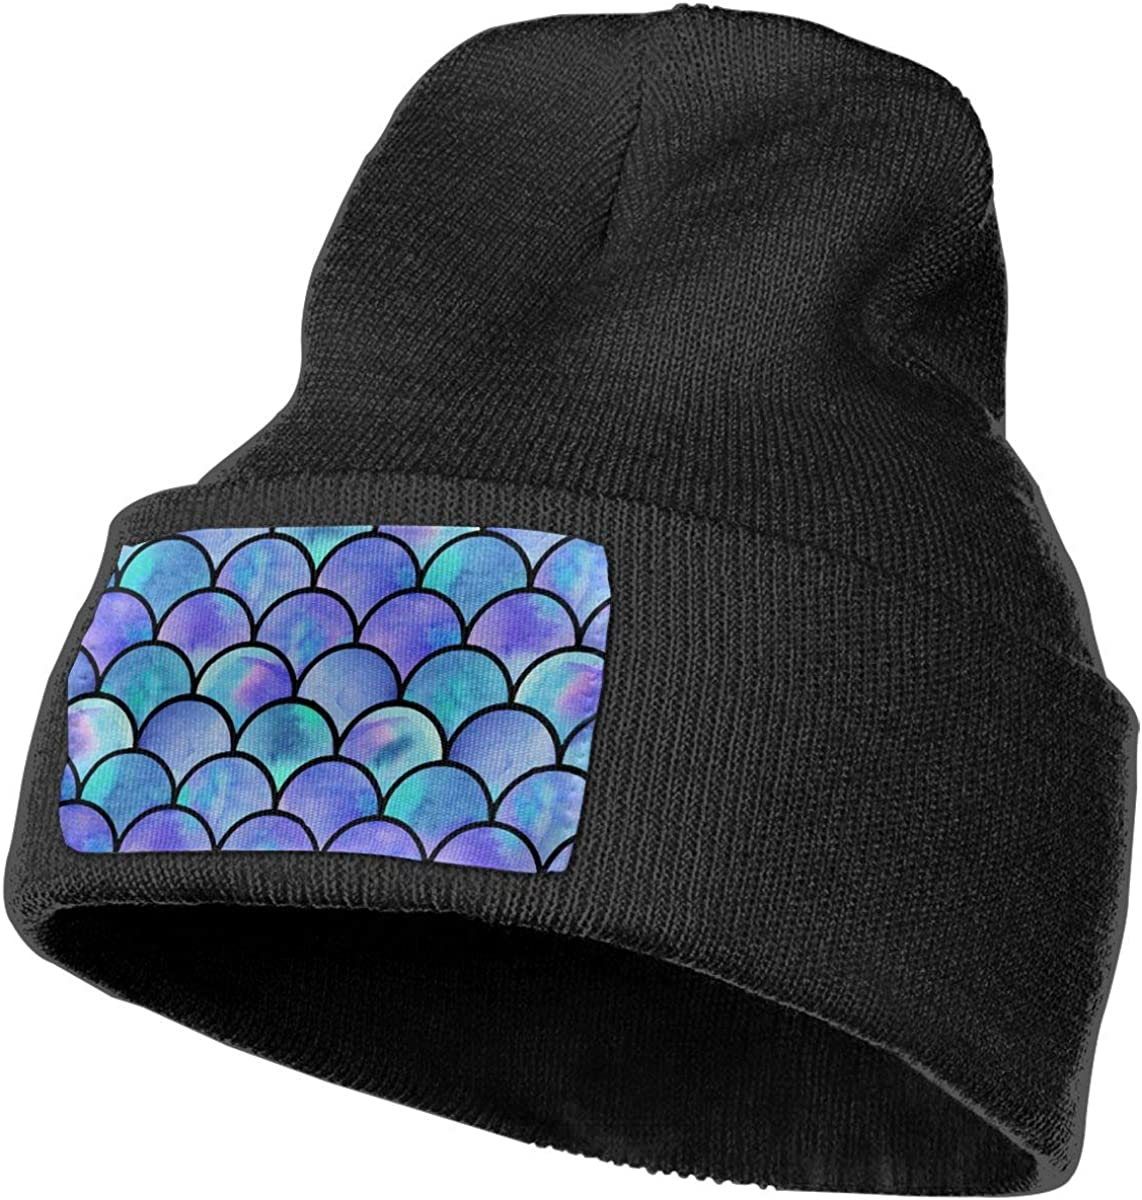 Unisex 100/% Acrylic Knitted Cap Stretchy Colorful Elephant Beanies for Women